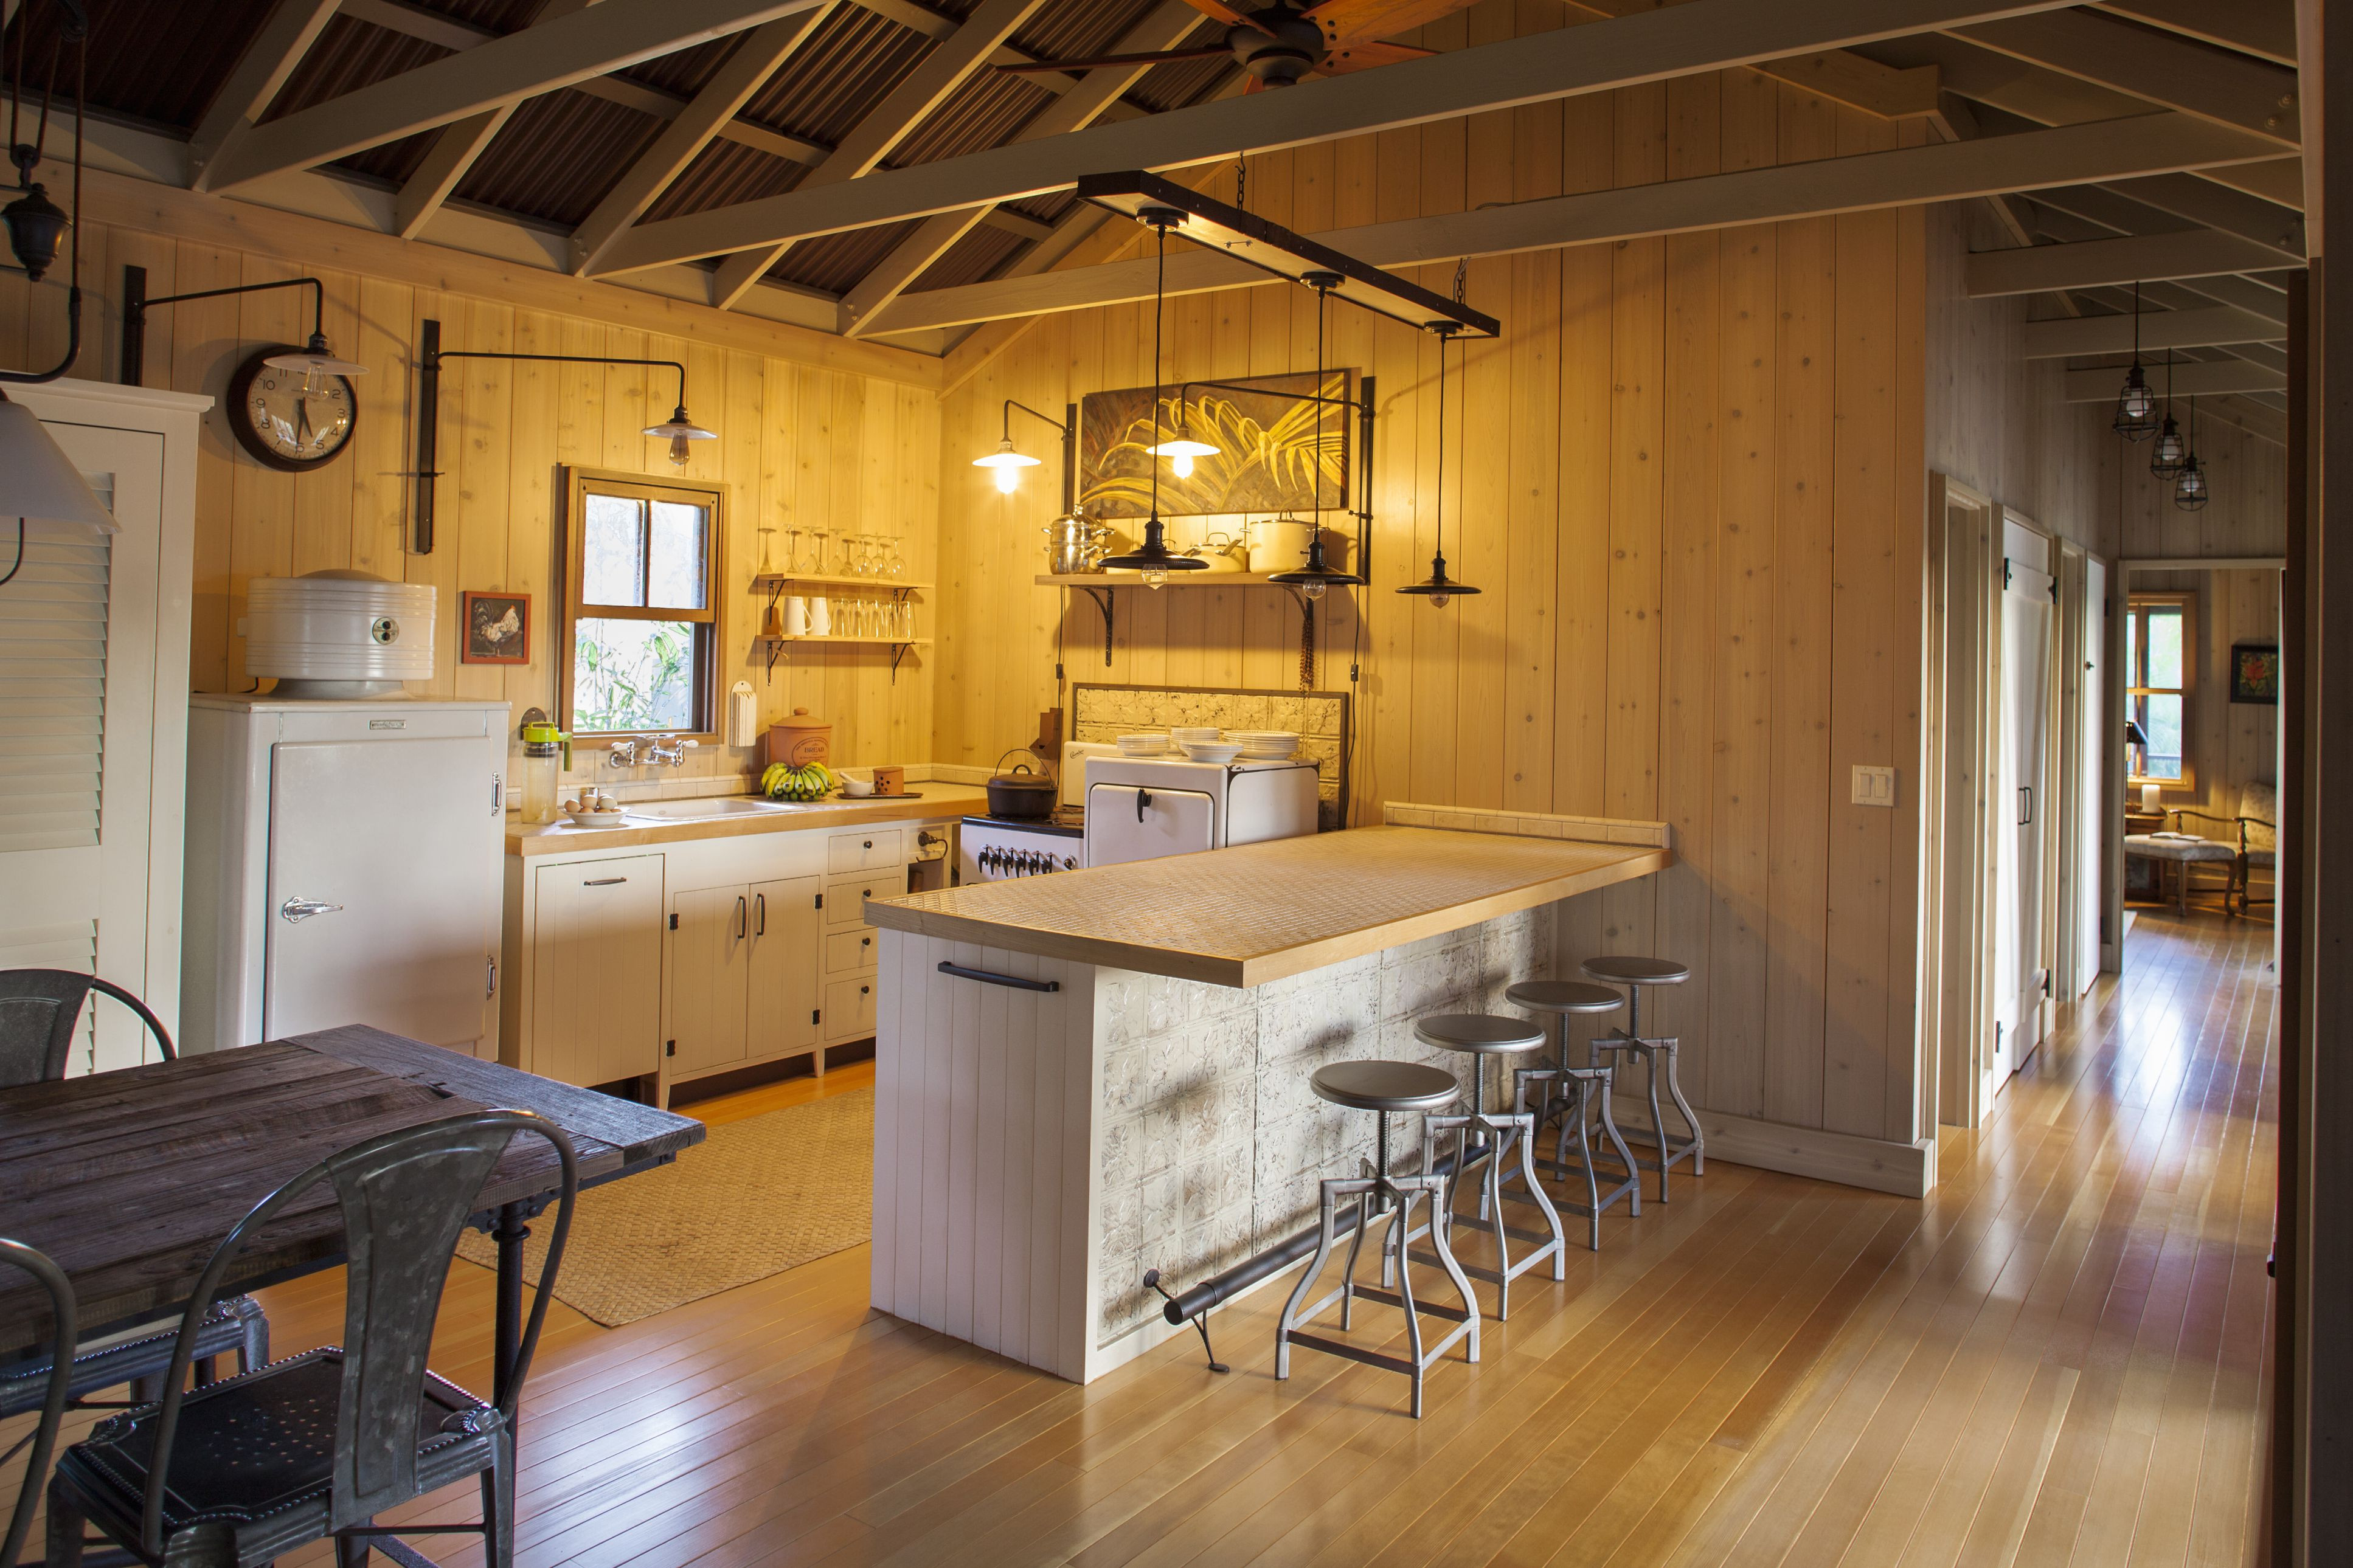 rustic hardwood flooring for sale of gorgeous kitchens with wooden flooring inside kitchen wood floor and open beam ceiling 583805041 compassionate eye found 56a4a1663df78cf772835369